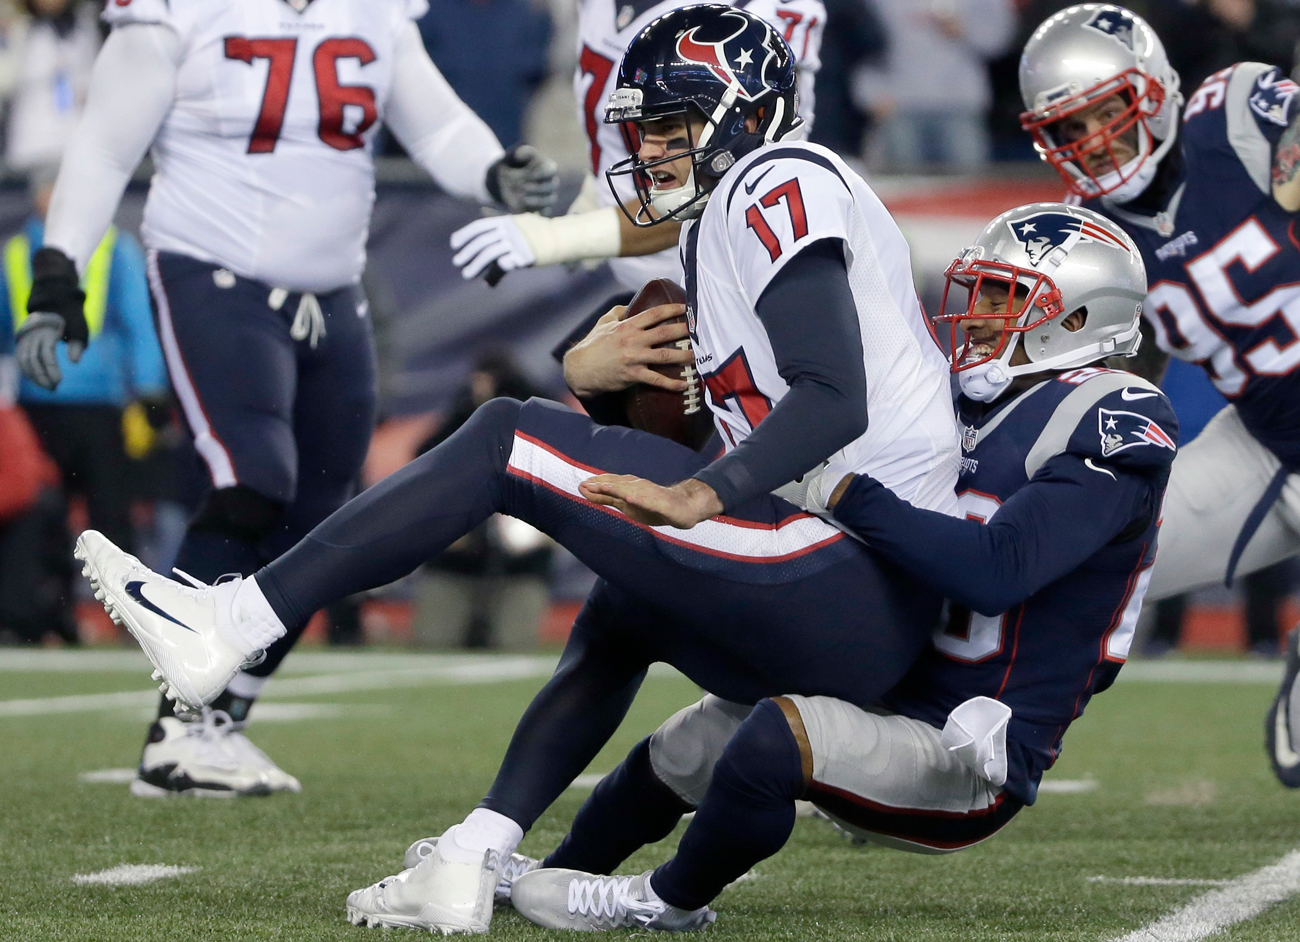 Brock Osweiler and the Texans finished the season 10-8 (including playoffs) and face many questions in the offseason.